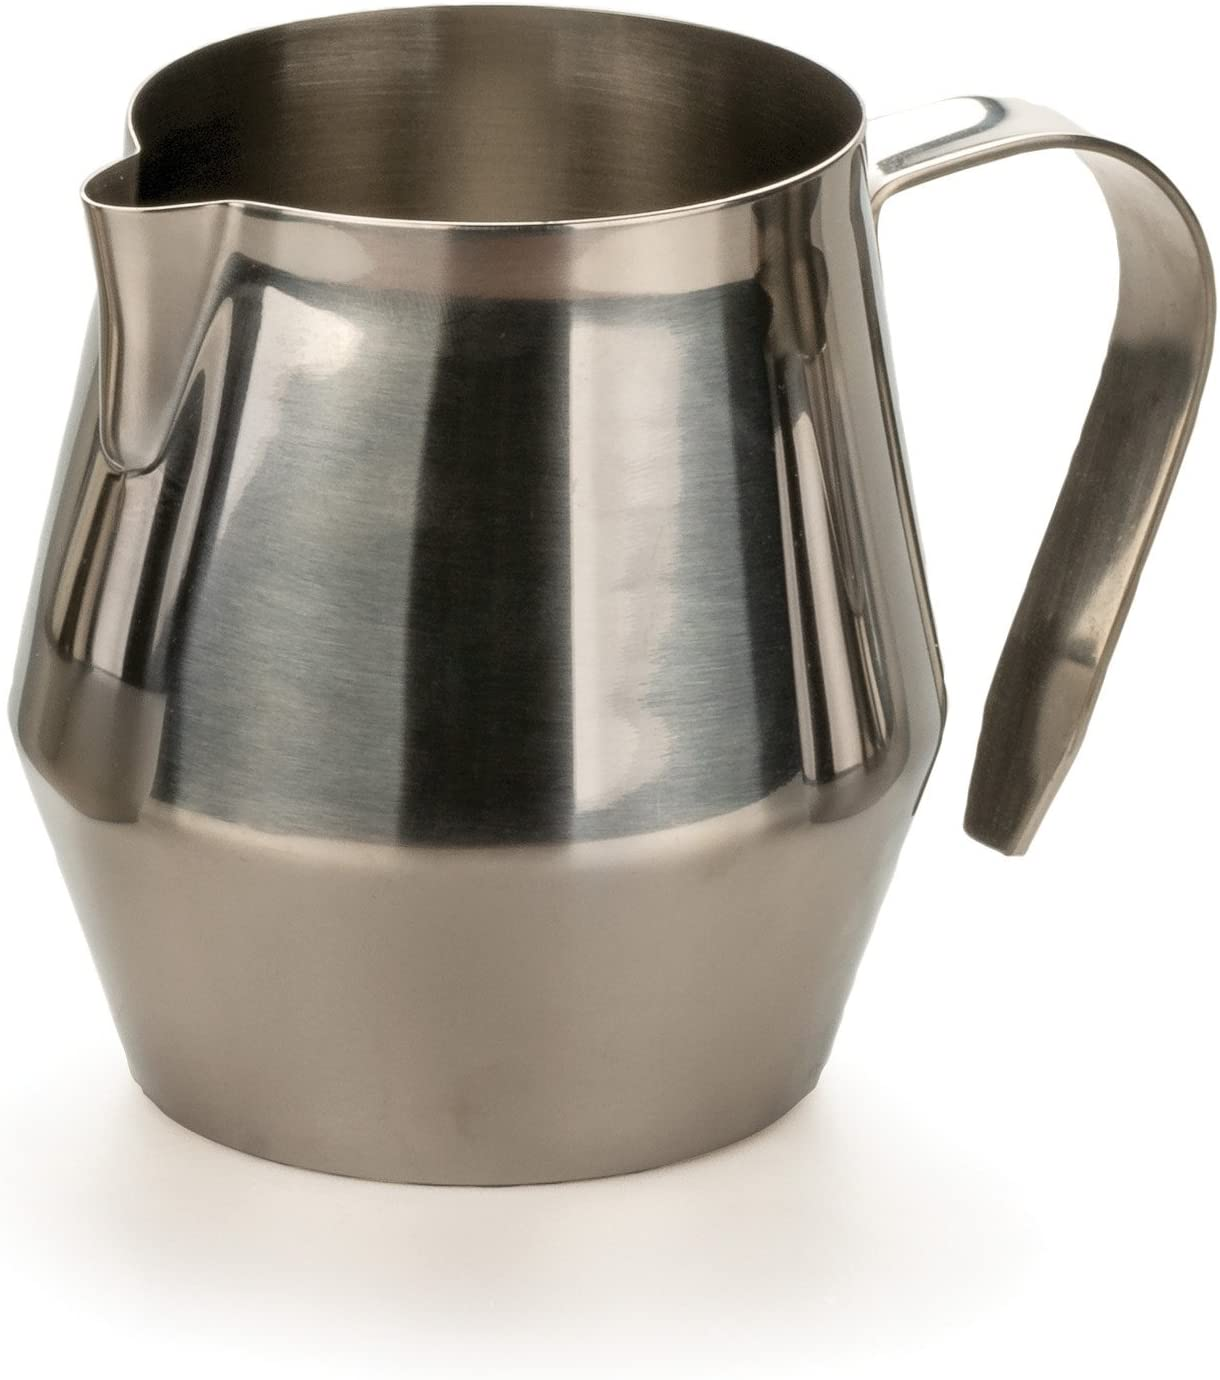 RSVP Italian Espress Coffee & Tea Steaming & Frothing Pitcher 20oz. Capacity